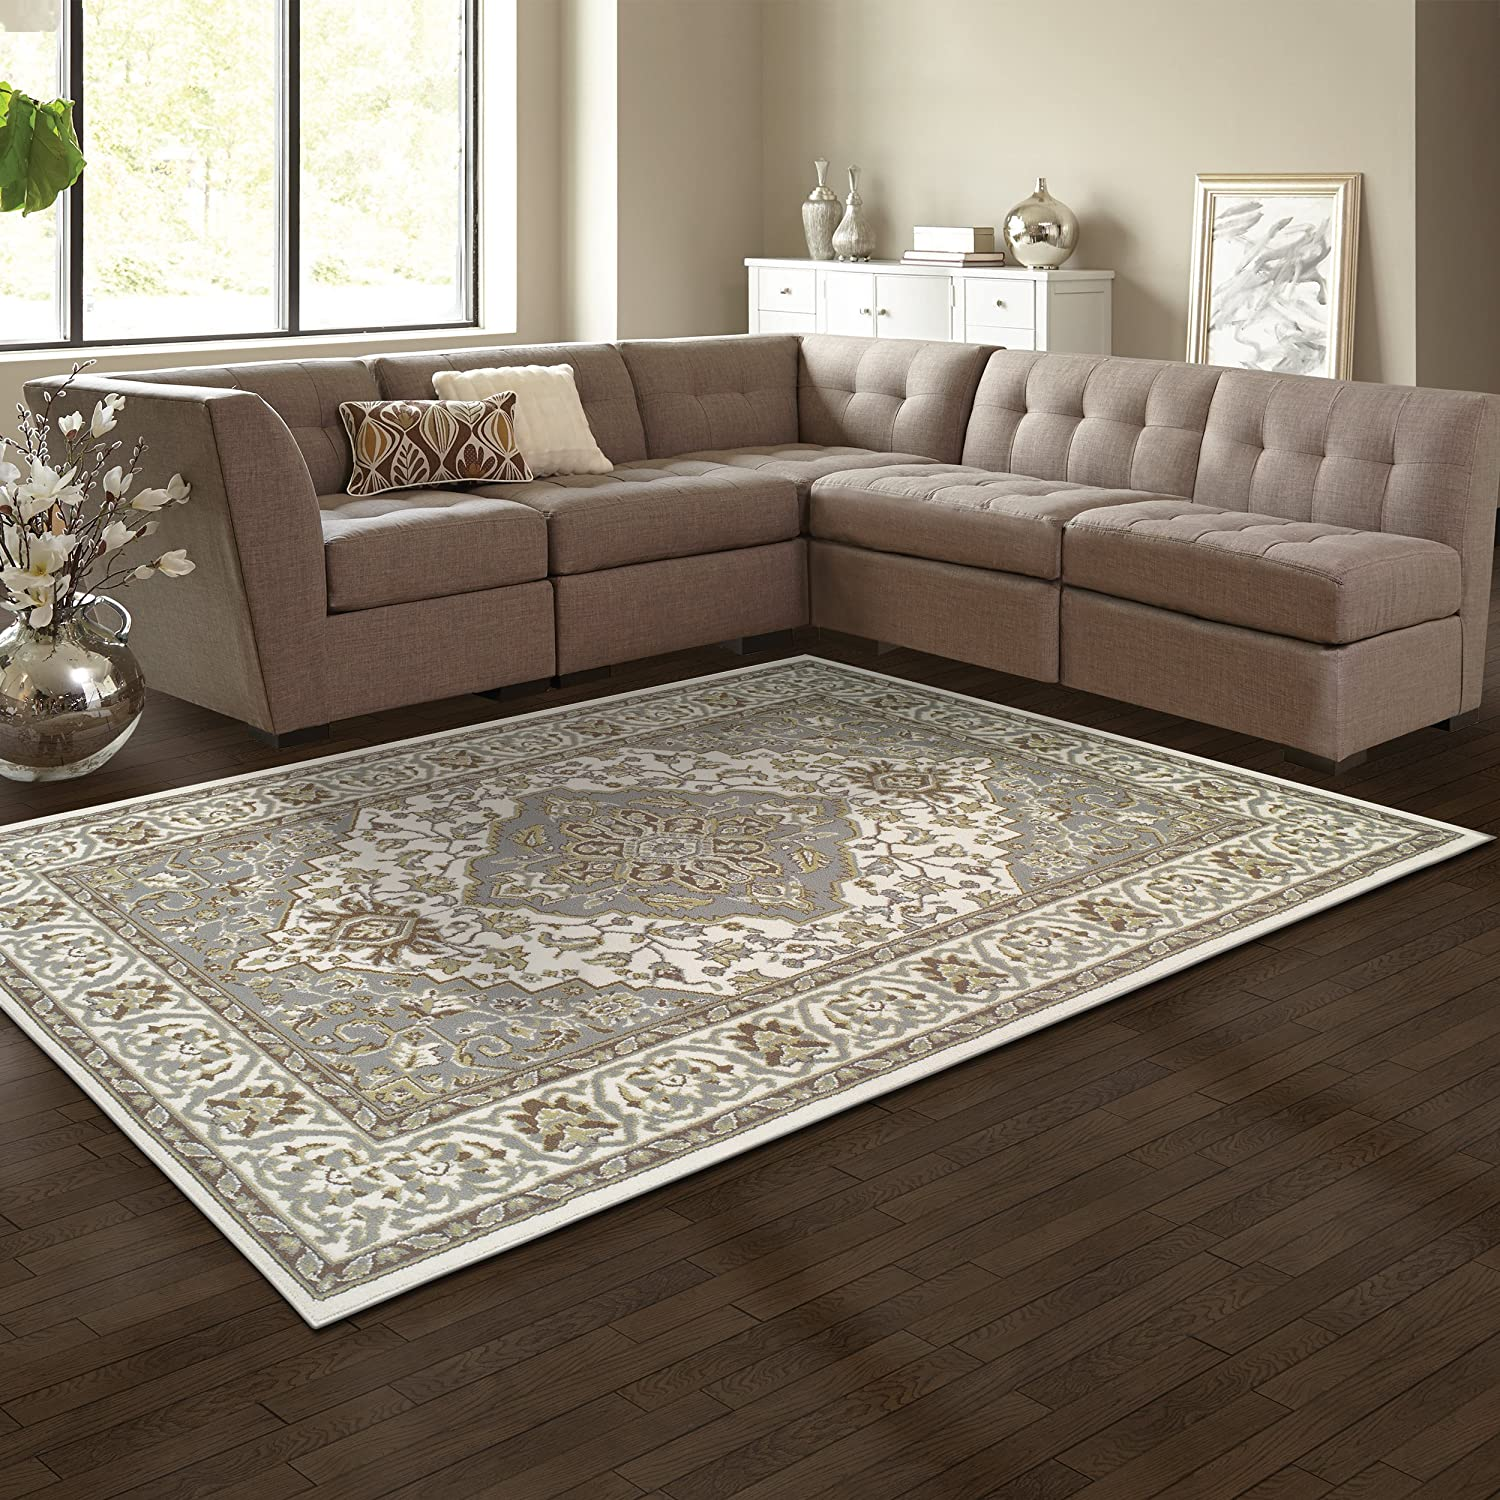 Superior Elegant Glendale Collection Area Rug, 8mm Pile Height with Jute Backing, Traditional Oriental Rug Design, Anti-Static, Water-Repellent Rugs - Brown, 2' x 3' Rug 2' x 3' Rug 2X3RUG-GLENDALE-BR